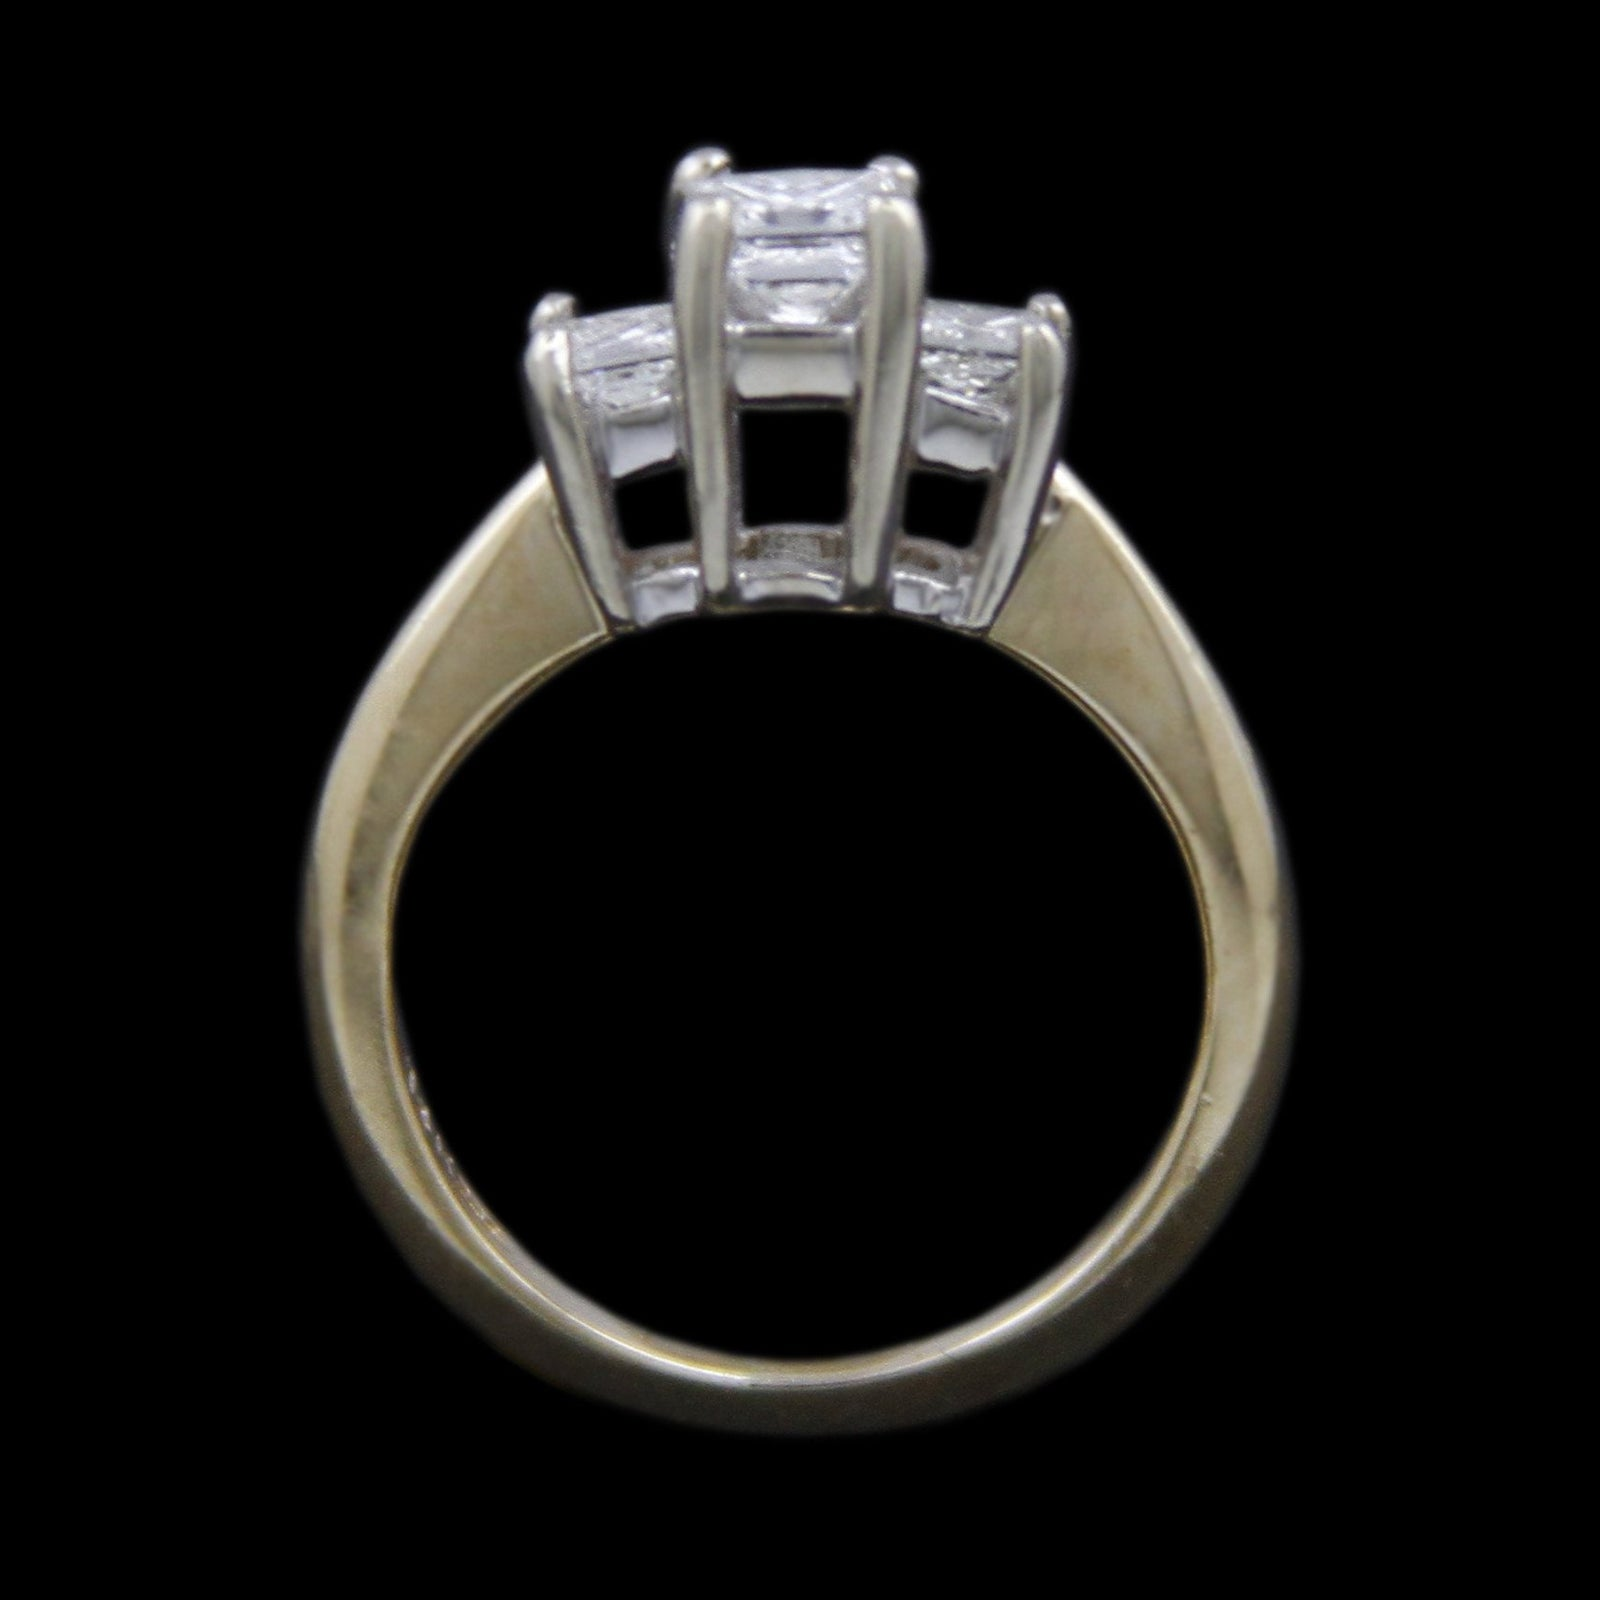 DeBeers Style Ring with .50cttw Princess Cut Diamonds Crafted in 14k Yellow Gold-1